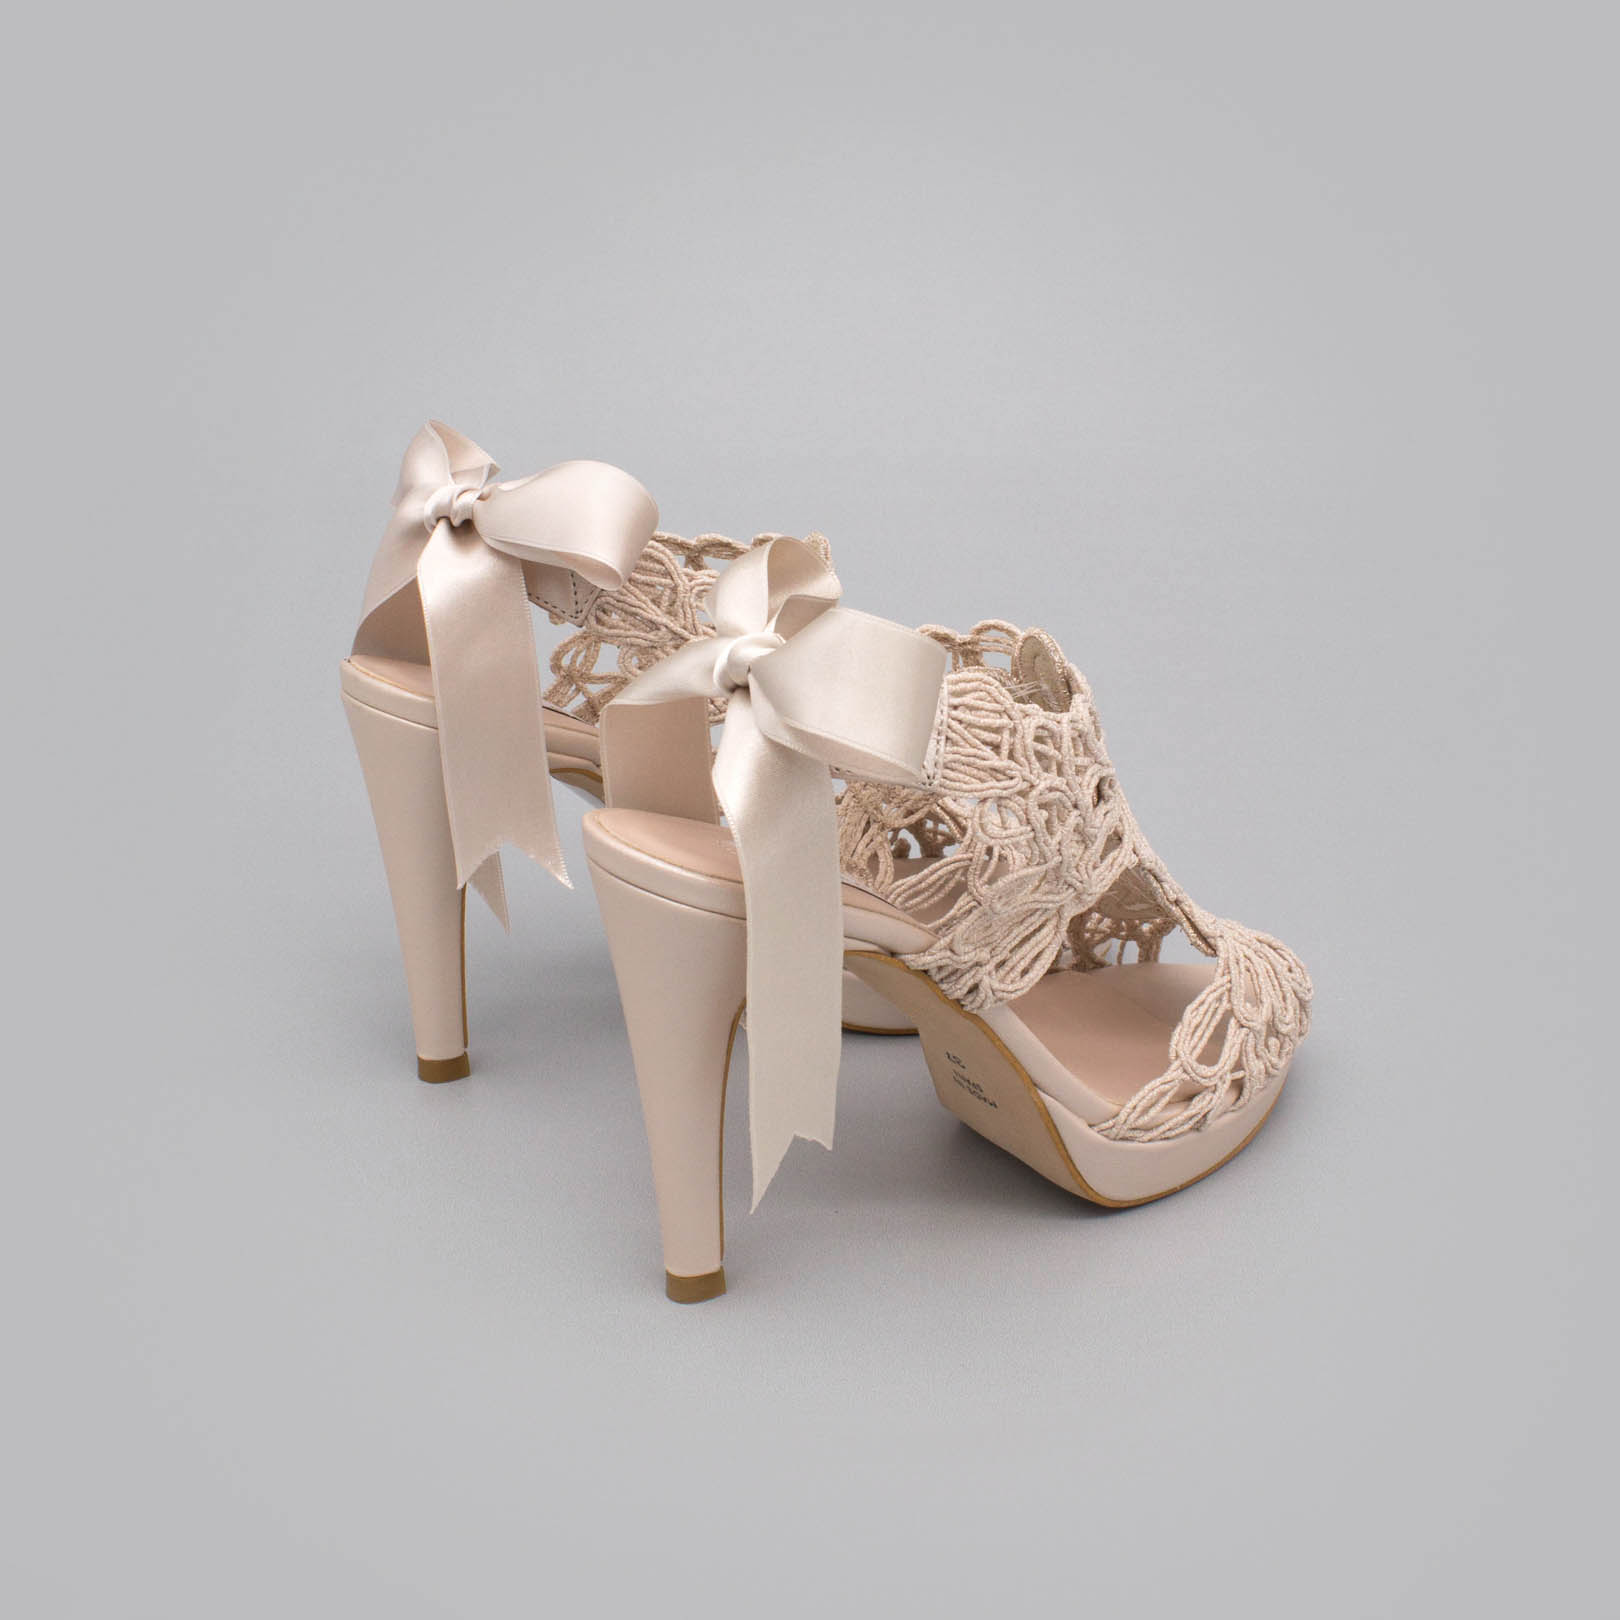 Nude colored sandals LOVERS Original sandals in leather and string with high heel and platform wedding shoes and party shoes 2020. Angel Alarcon Spain woman